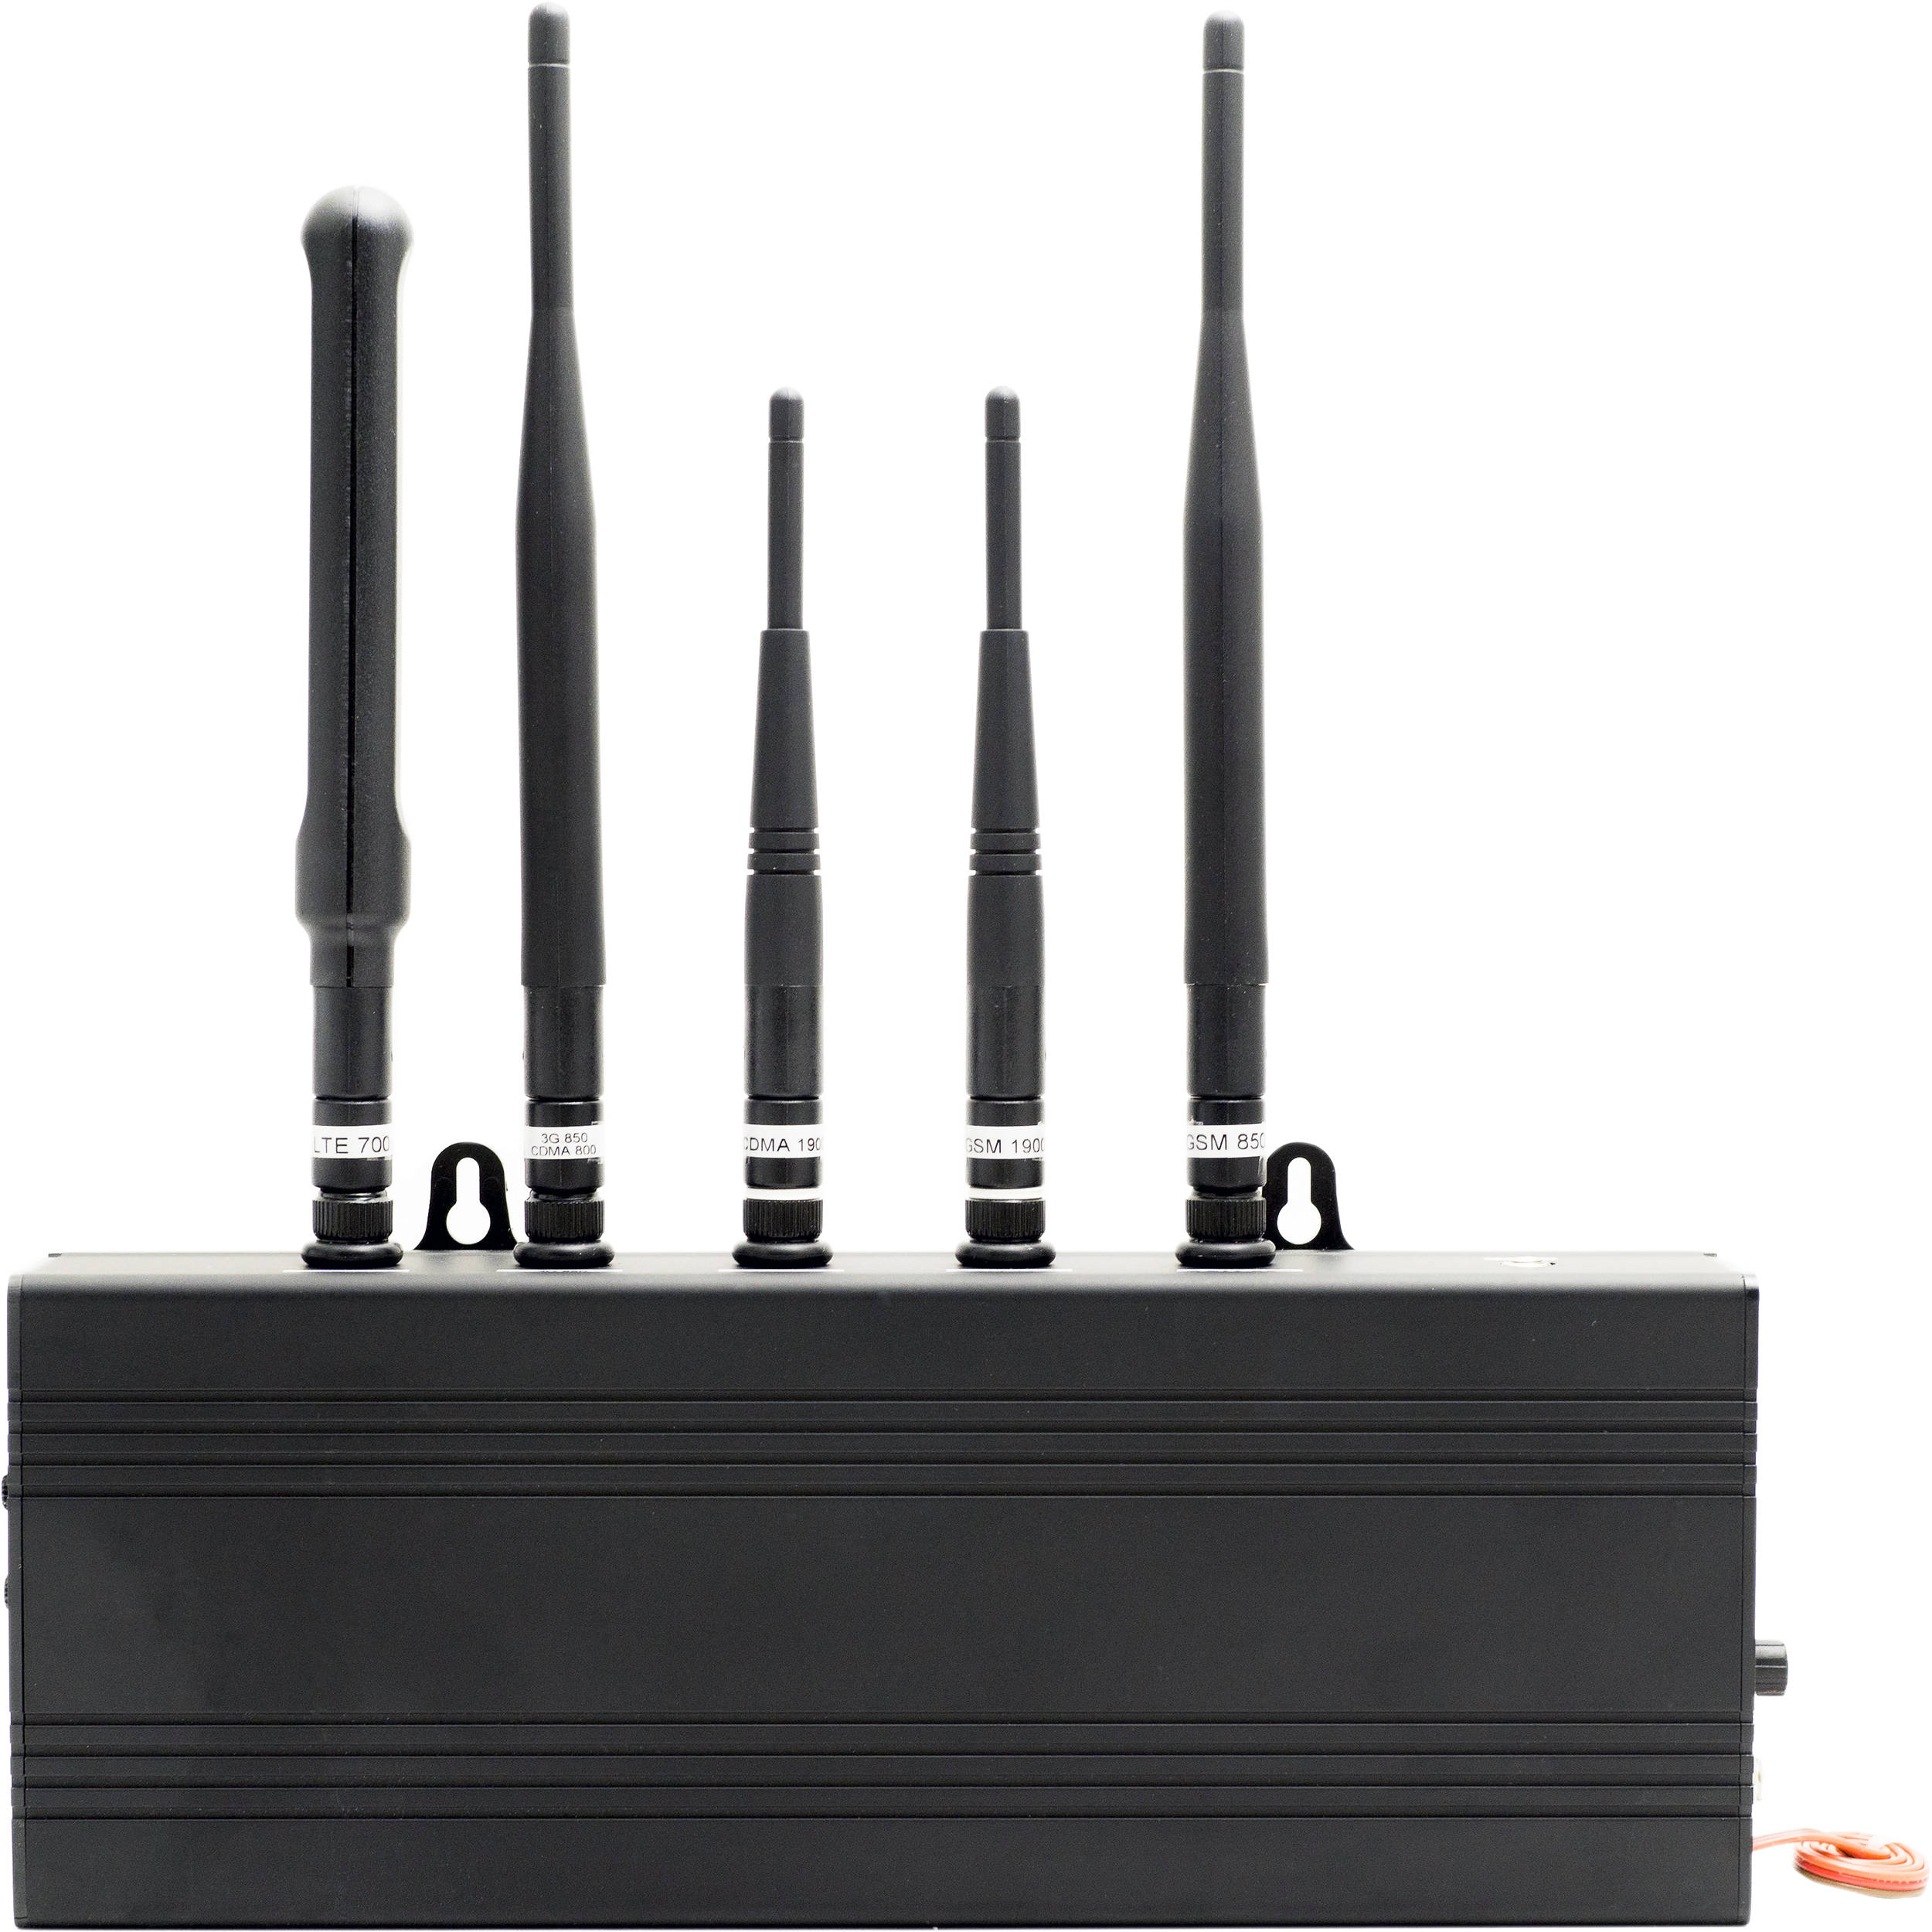 Things to Consider Before Purchasing a Cellphone Jammer